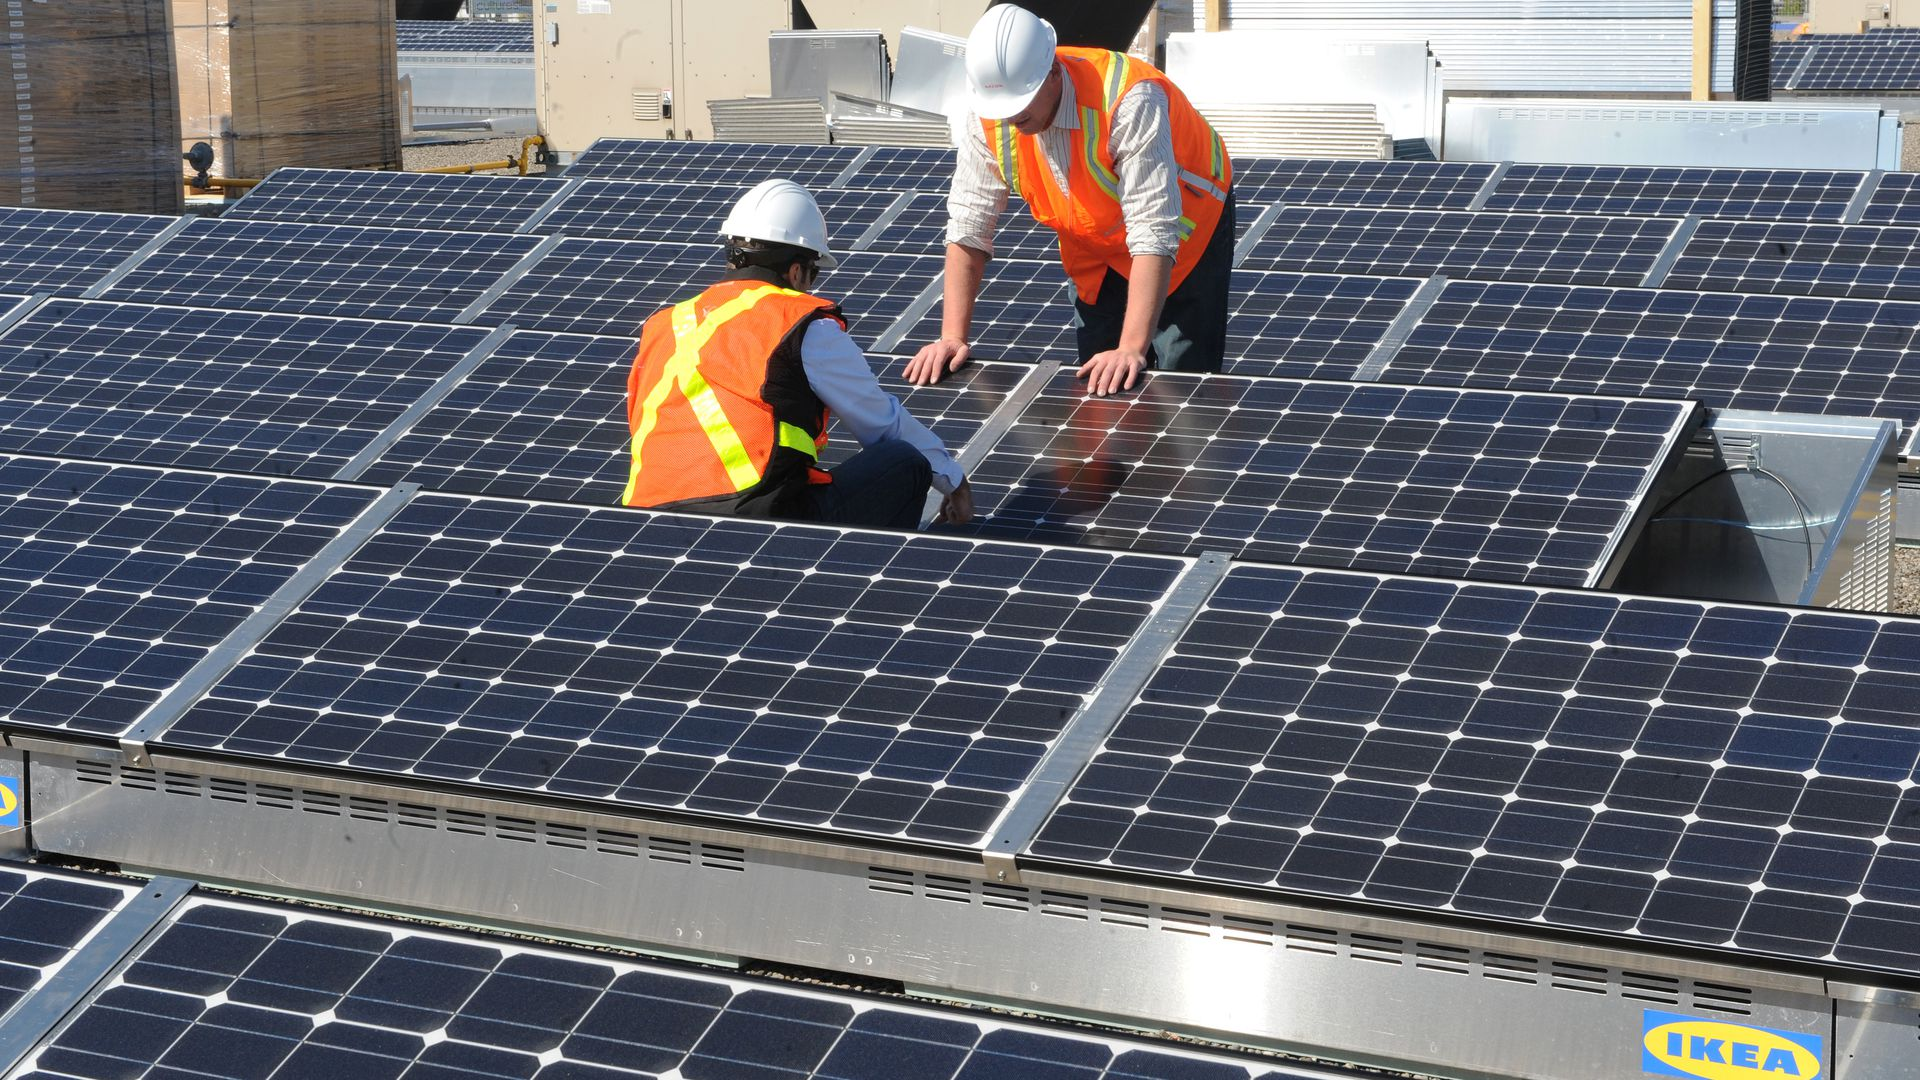 Workers install solar panels on the roof of an Ikea